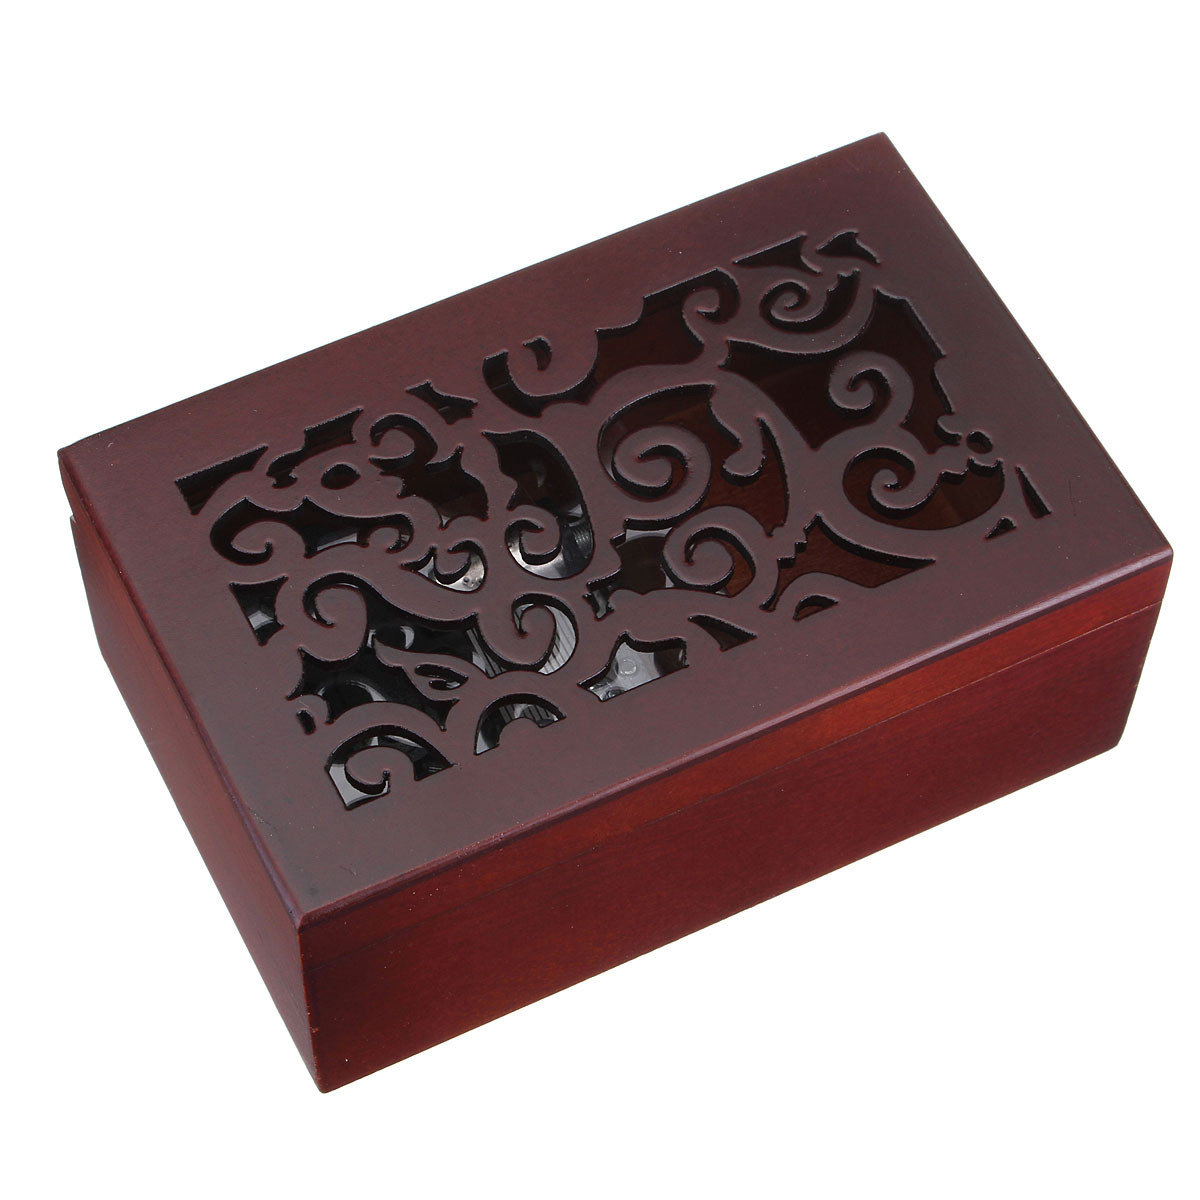 ... -Music-Box-Musical-Finished-Wood-with-Open-Gothic-Pattern-Lid-Jewelry